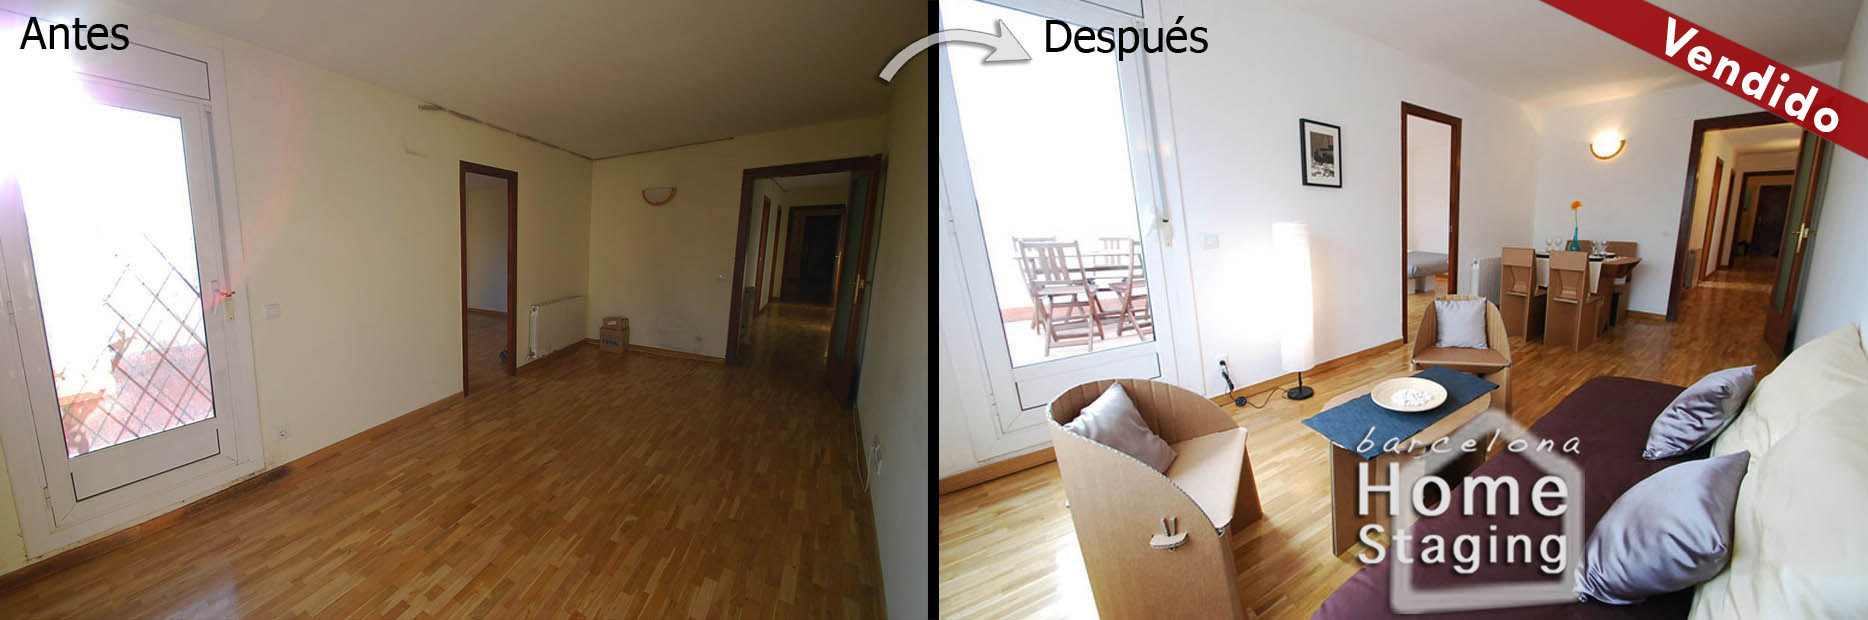 home-staging-barcelona-salon-muebles-cartón